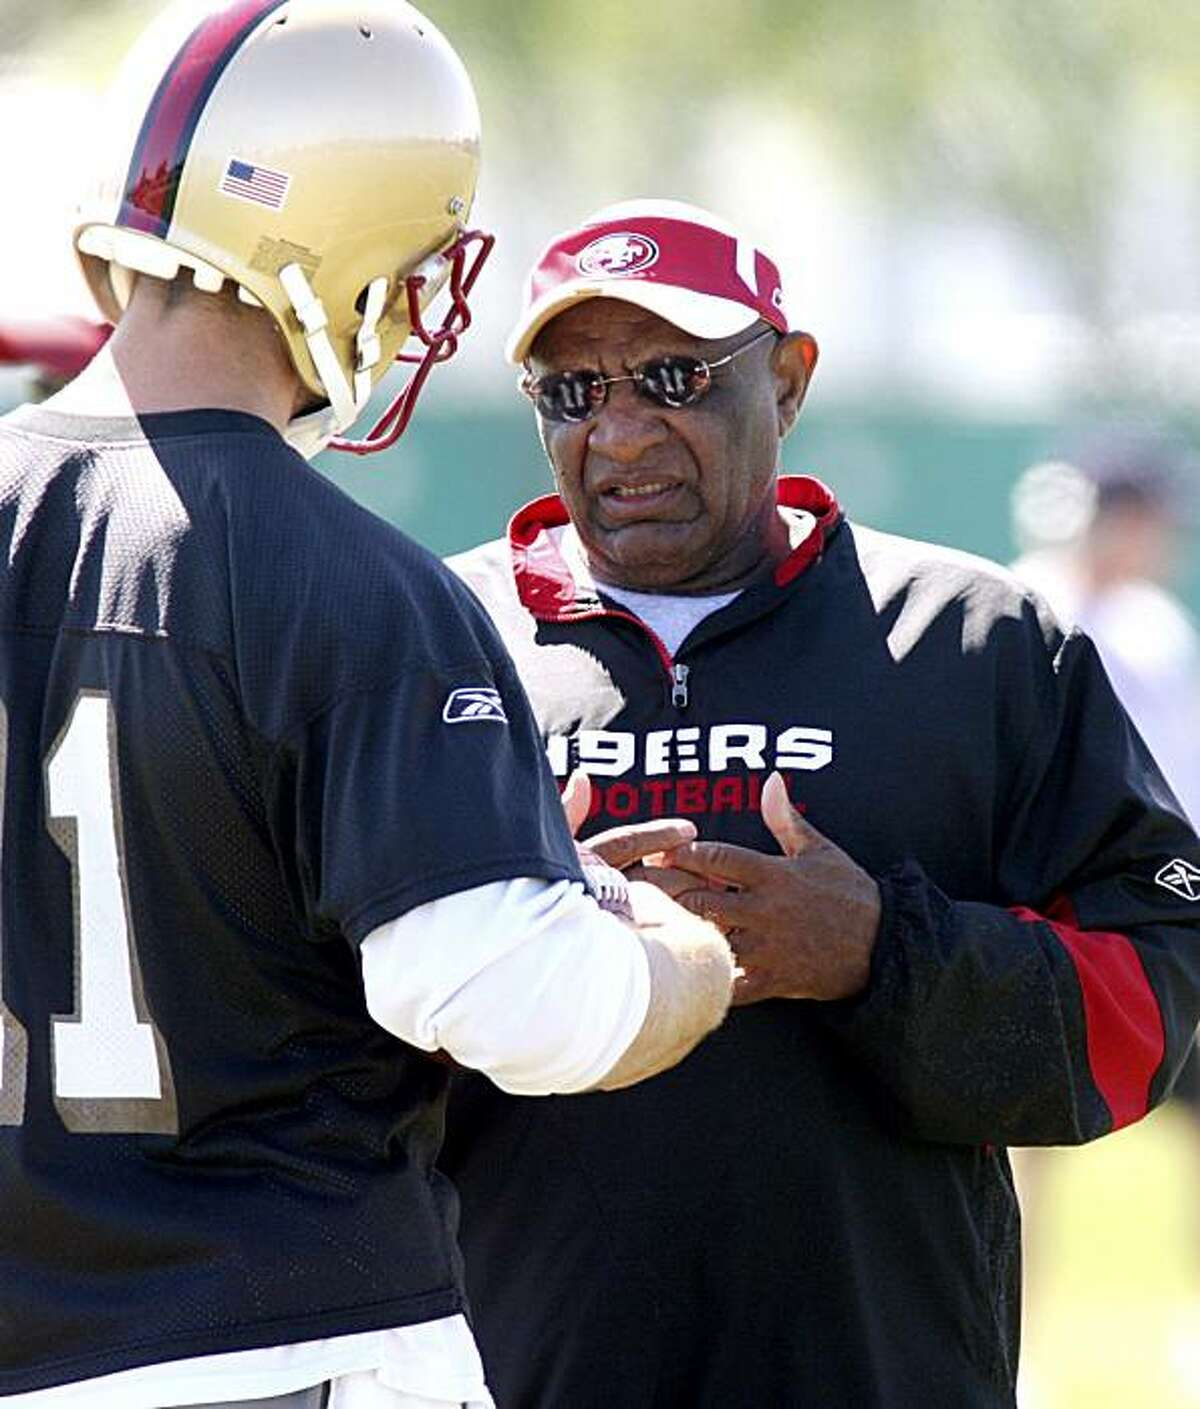 San Francisco 49ers' quarterback Alex Smith, left, has a chat with offensive coordinator Jimmy Raye, at 49ers minicamp, Friday, March 20, 2009 in Santa Clara, Calif.